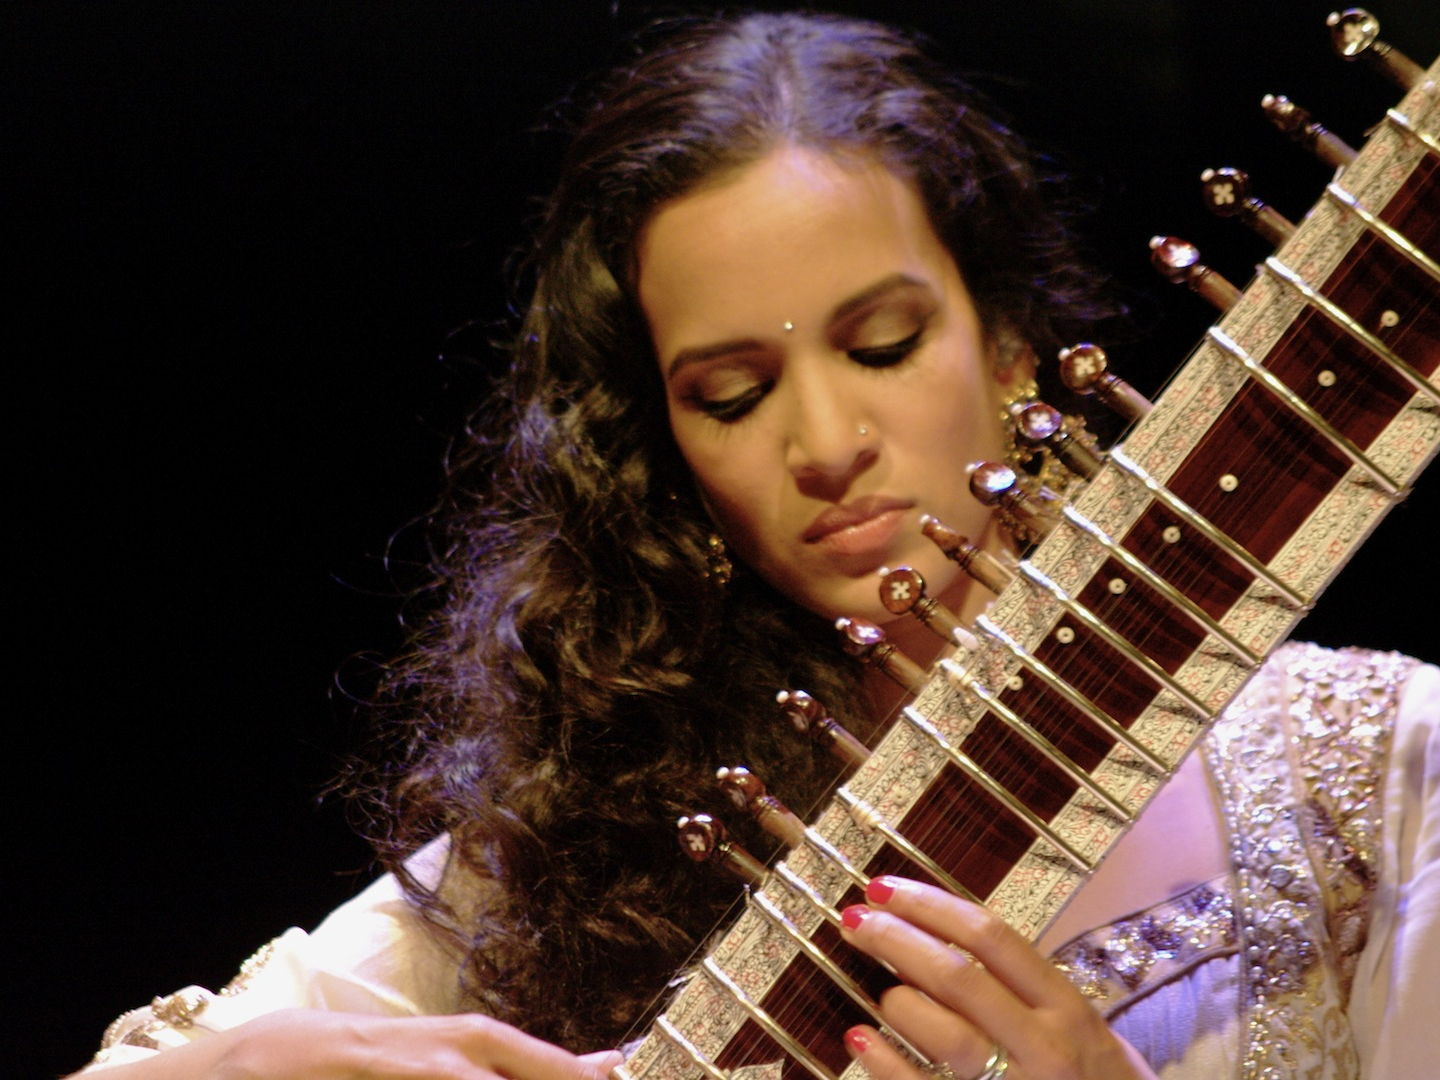 Rag Desh Anoushka Shankar listening quiz for Edexcel GCSE Music with excerpts and answers